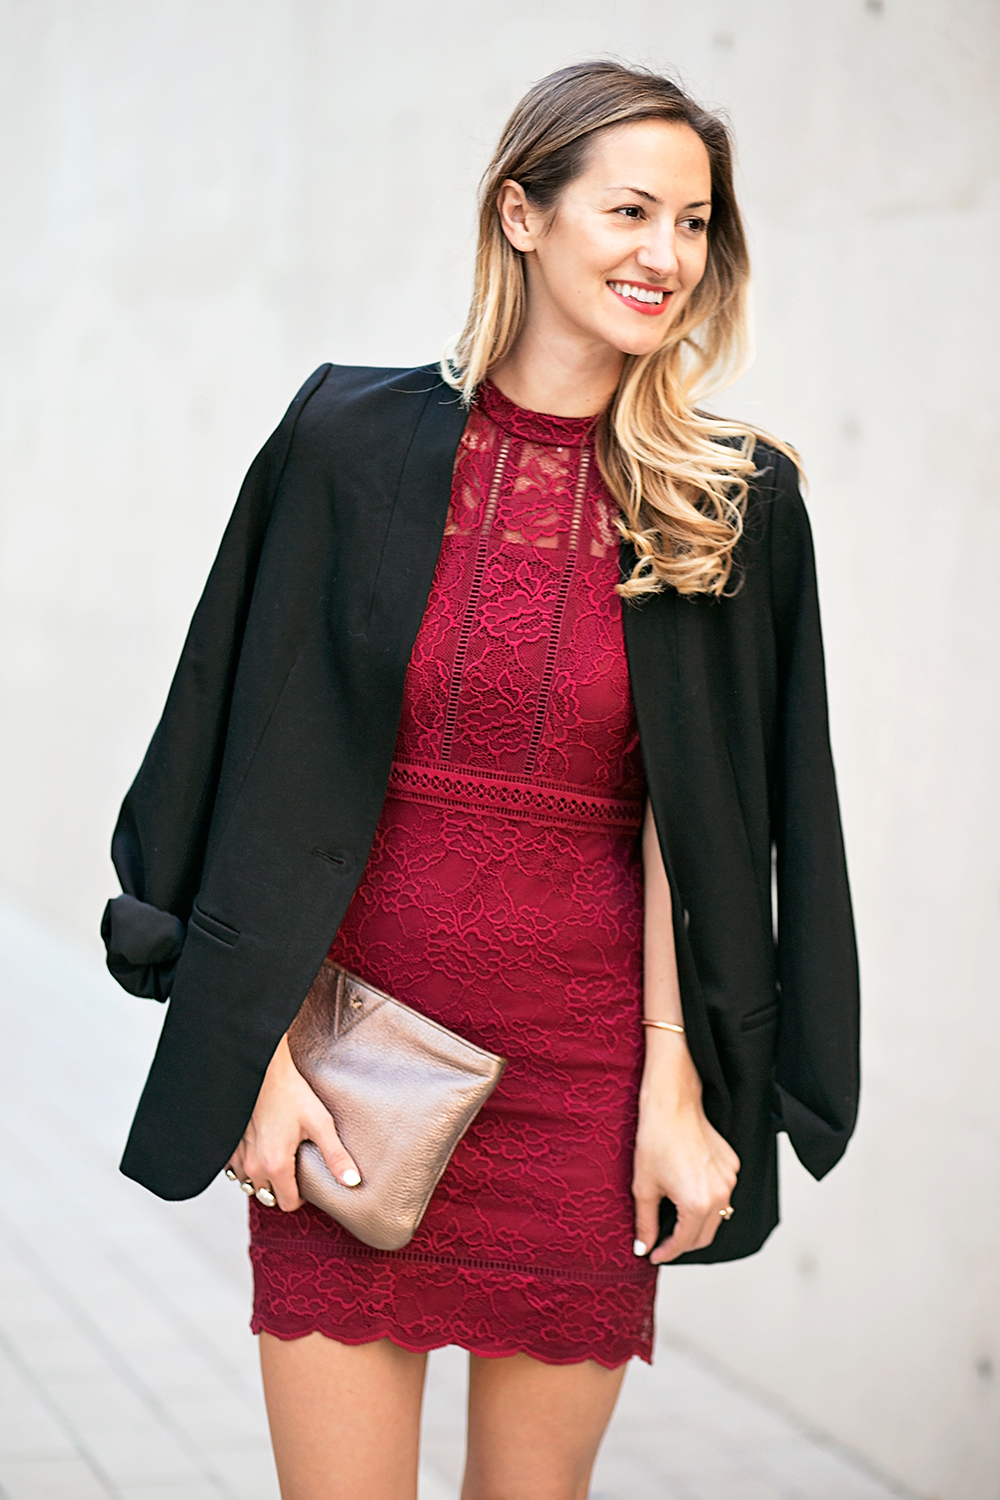 livvyland-blog-olivia-watson-holiday-red-lace-cocktail-dress-party-outfit-winter-holiday-office-nye-what-to-wear-3